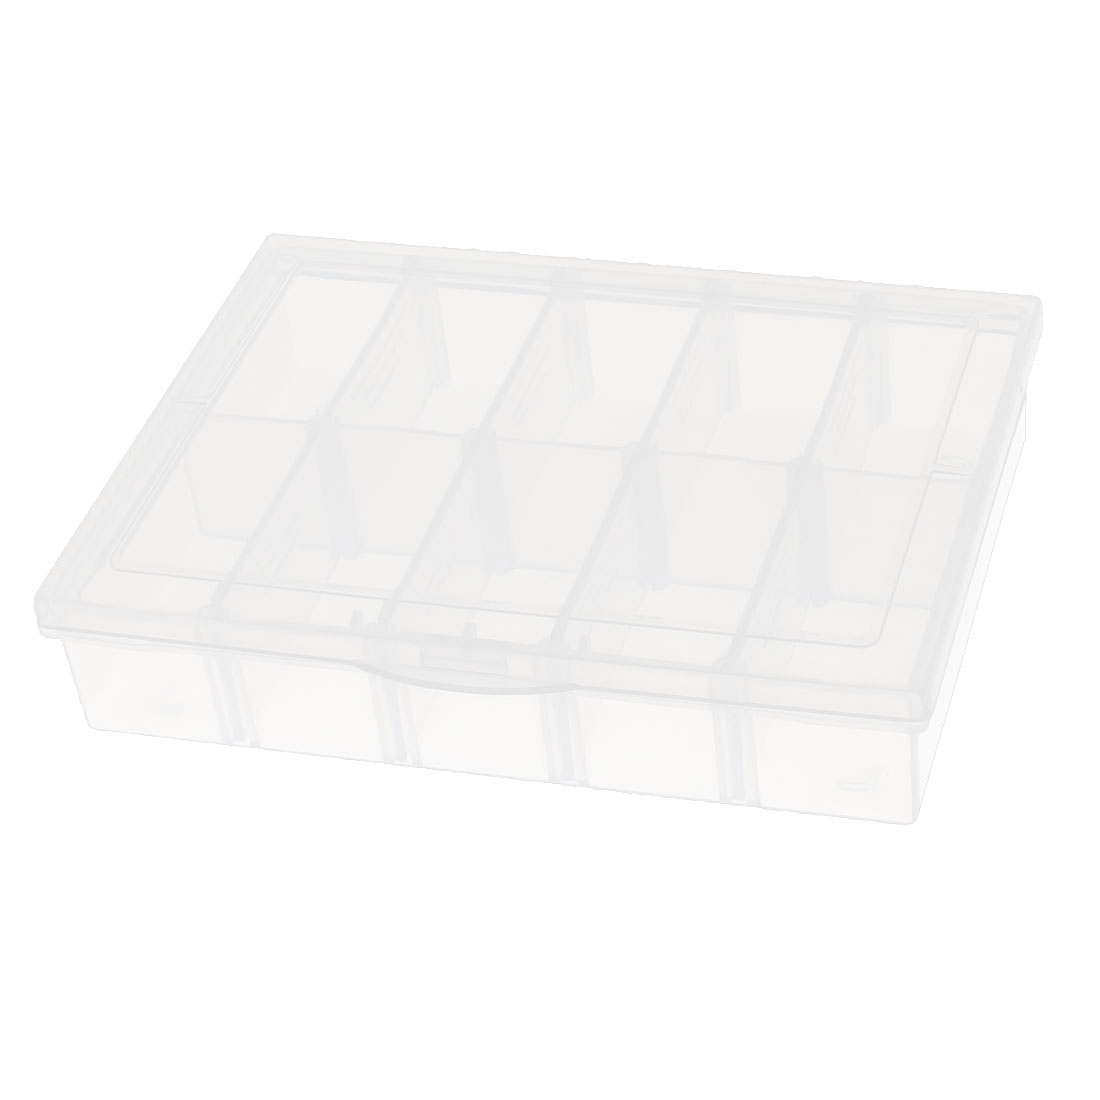 Plastic Rectangular Detachable 10 Pcs Electronic Components Storage Box Case